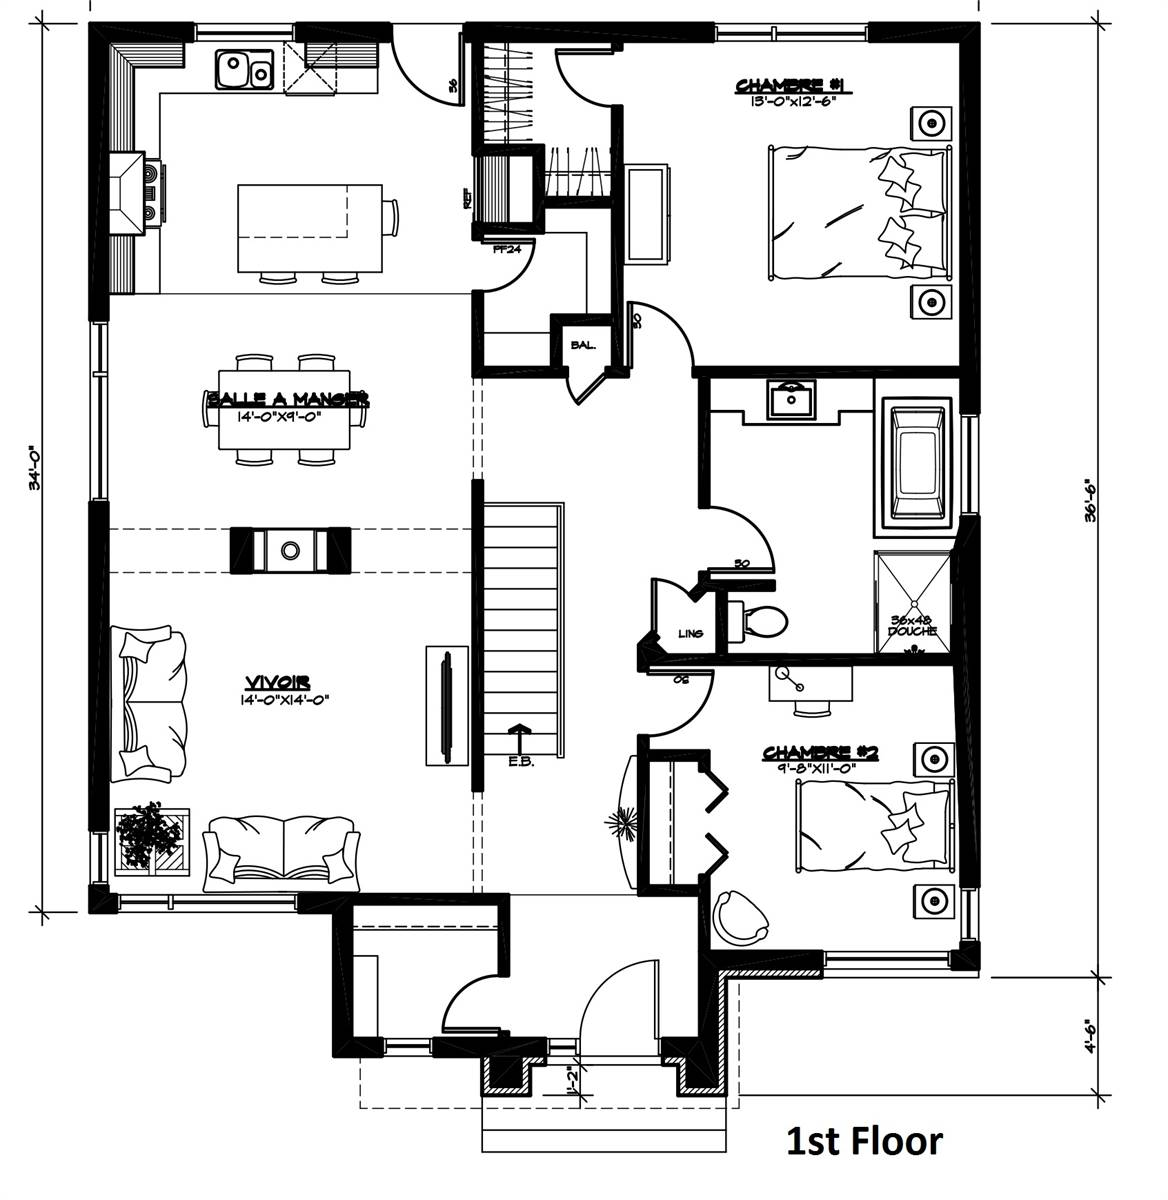 1st Floor Plan by DFD House Plans